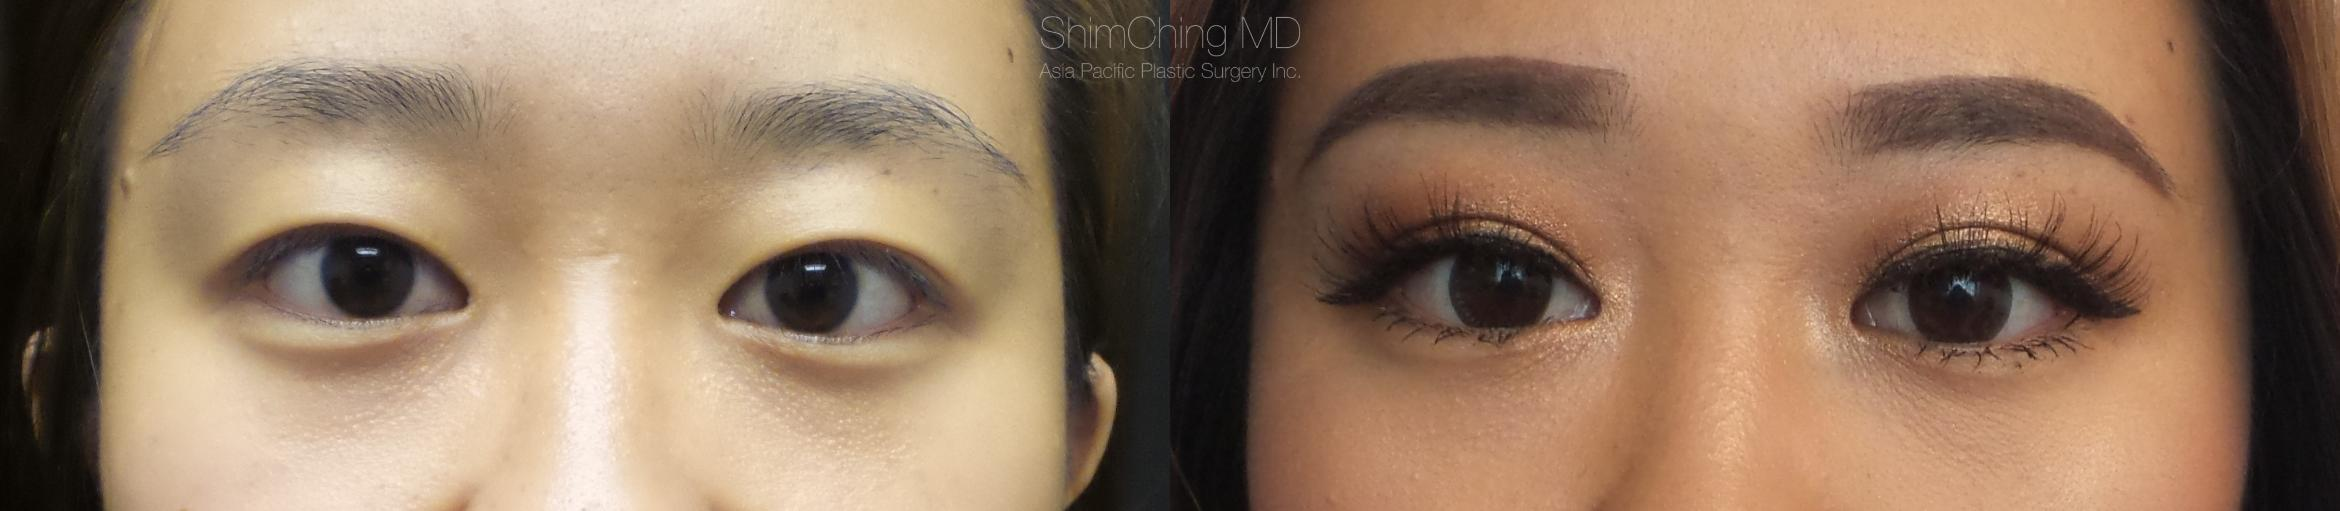 Asian Eyelid Case 1 Before & After View #1 | Honolulu, HI | Shim Ching, MD: Asia Pacific Plastic Surgery